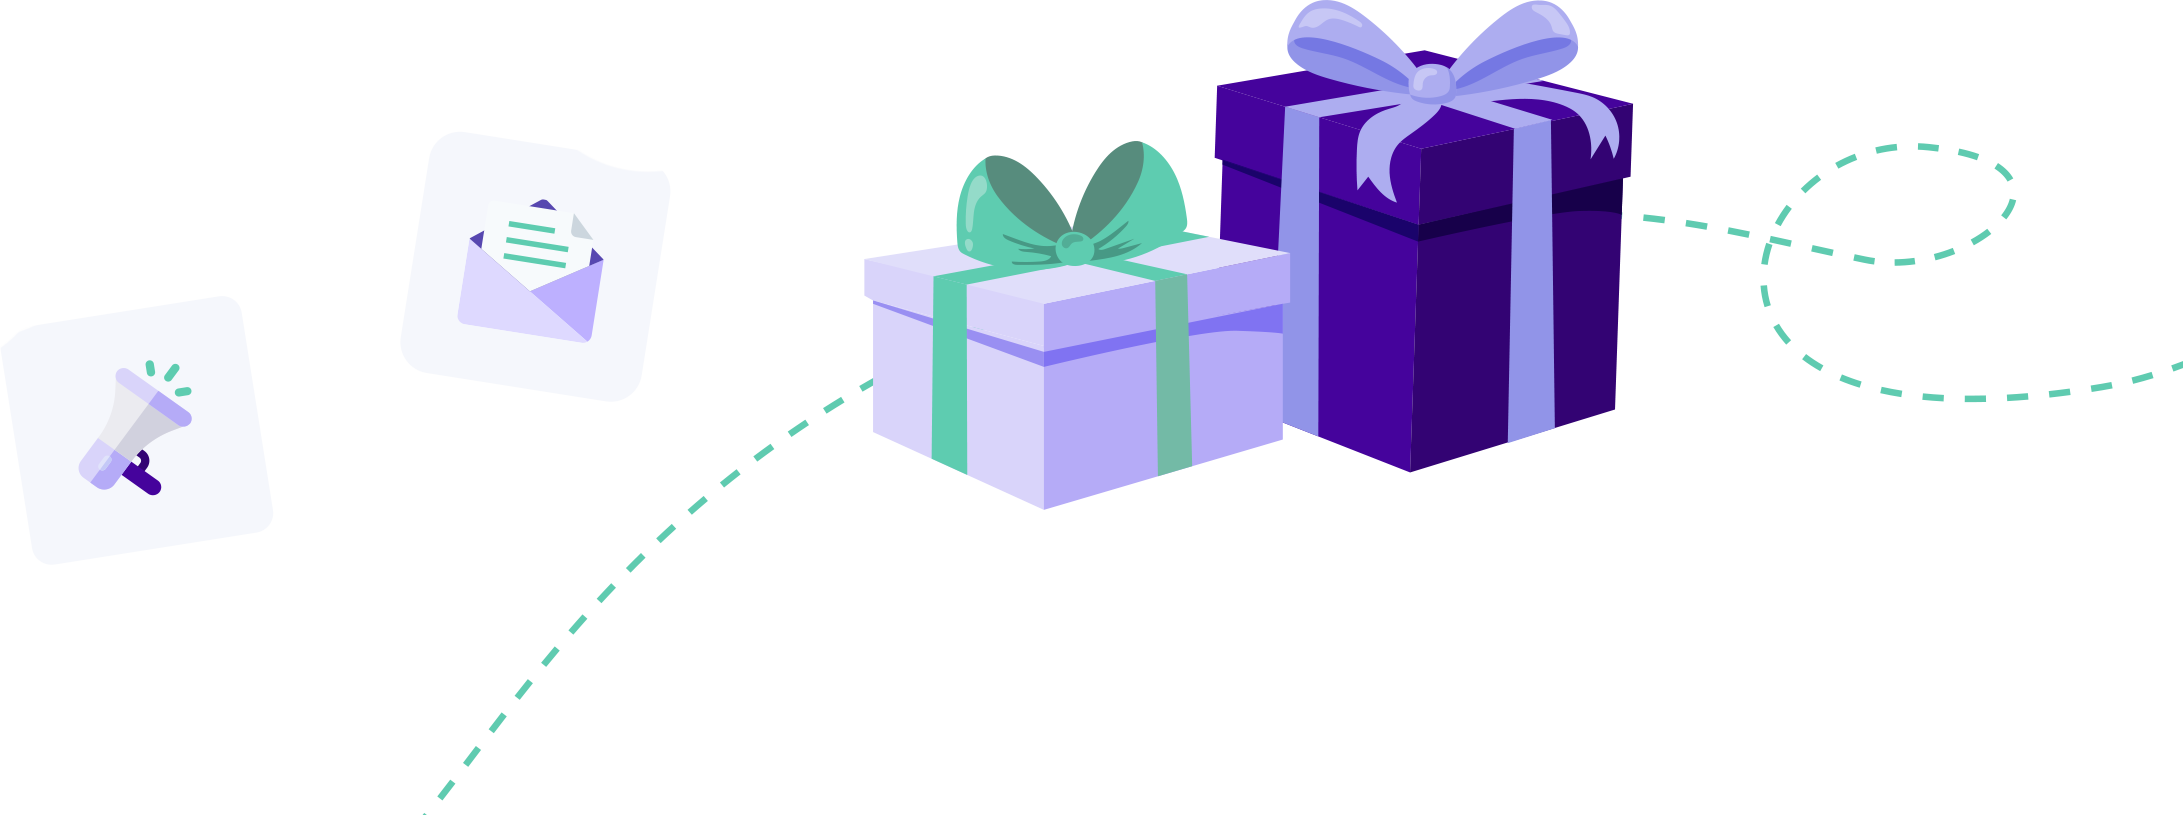 Q4 Gifting Guide 2021-14